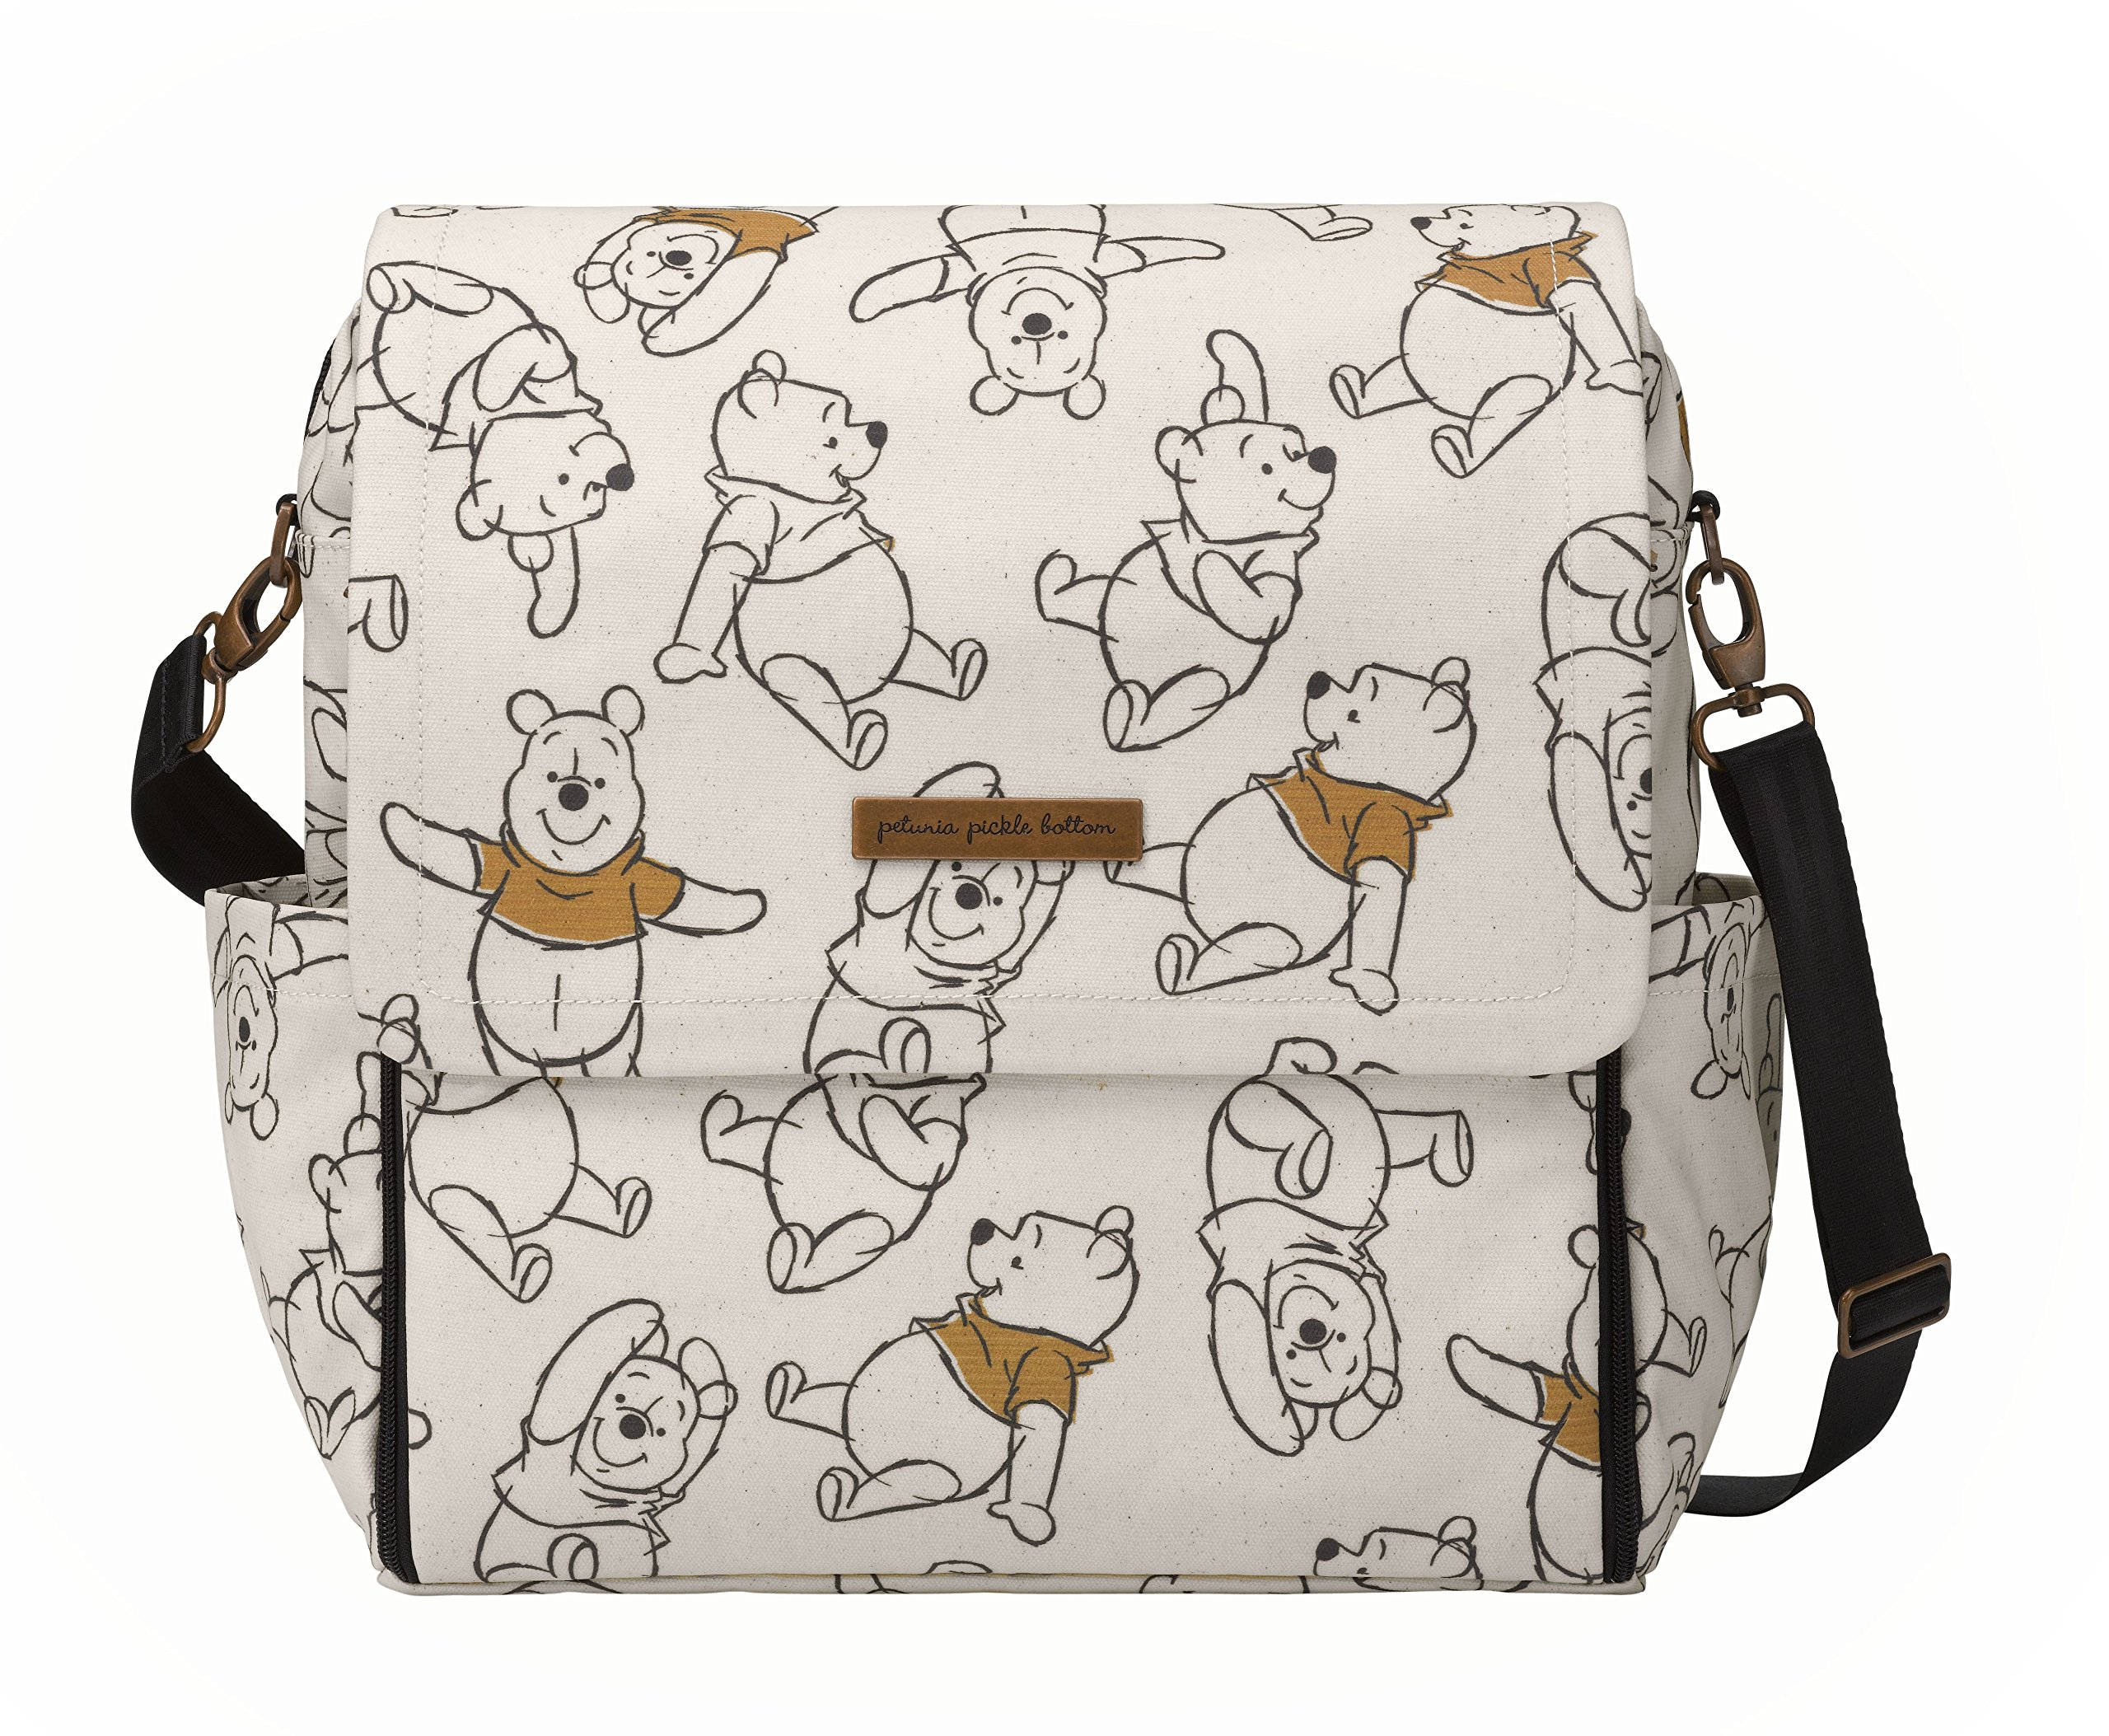 Petunia Pickle Bottom Boxy Backpack in Sketchbook, Winnie The Pooh and Friends